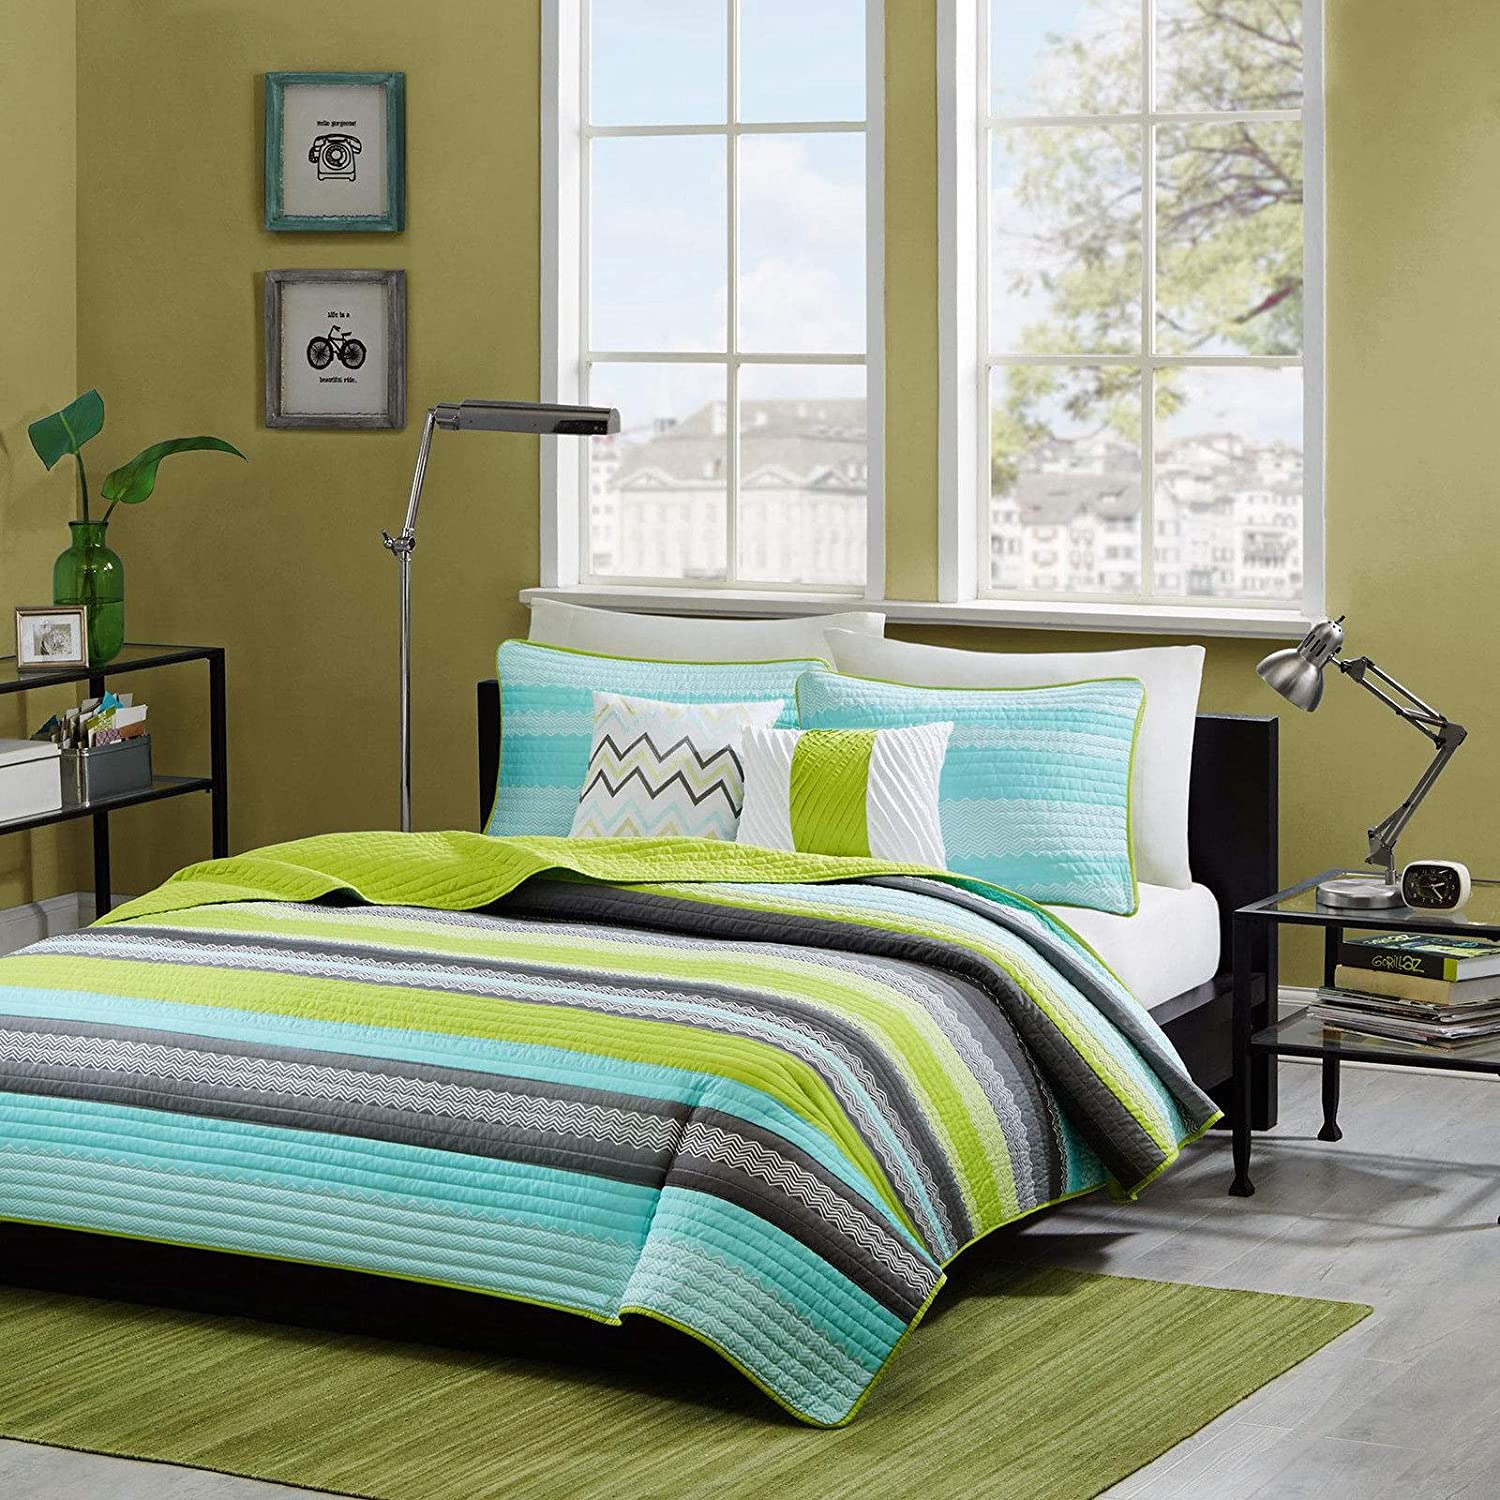 Blue And Green Bedding Sets Ease Bedding With Style